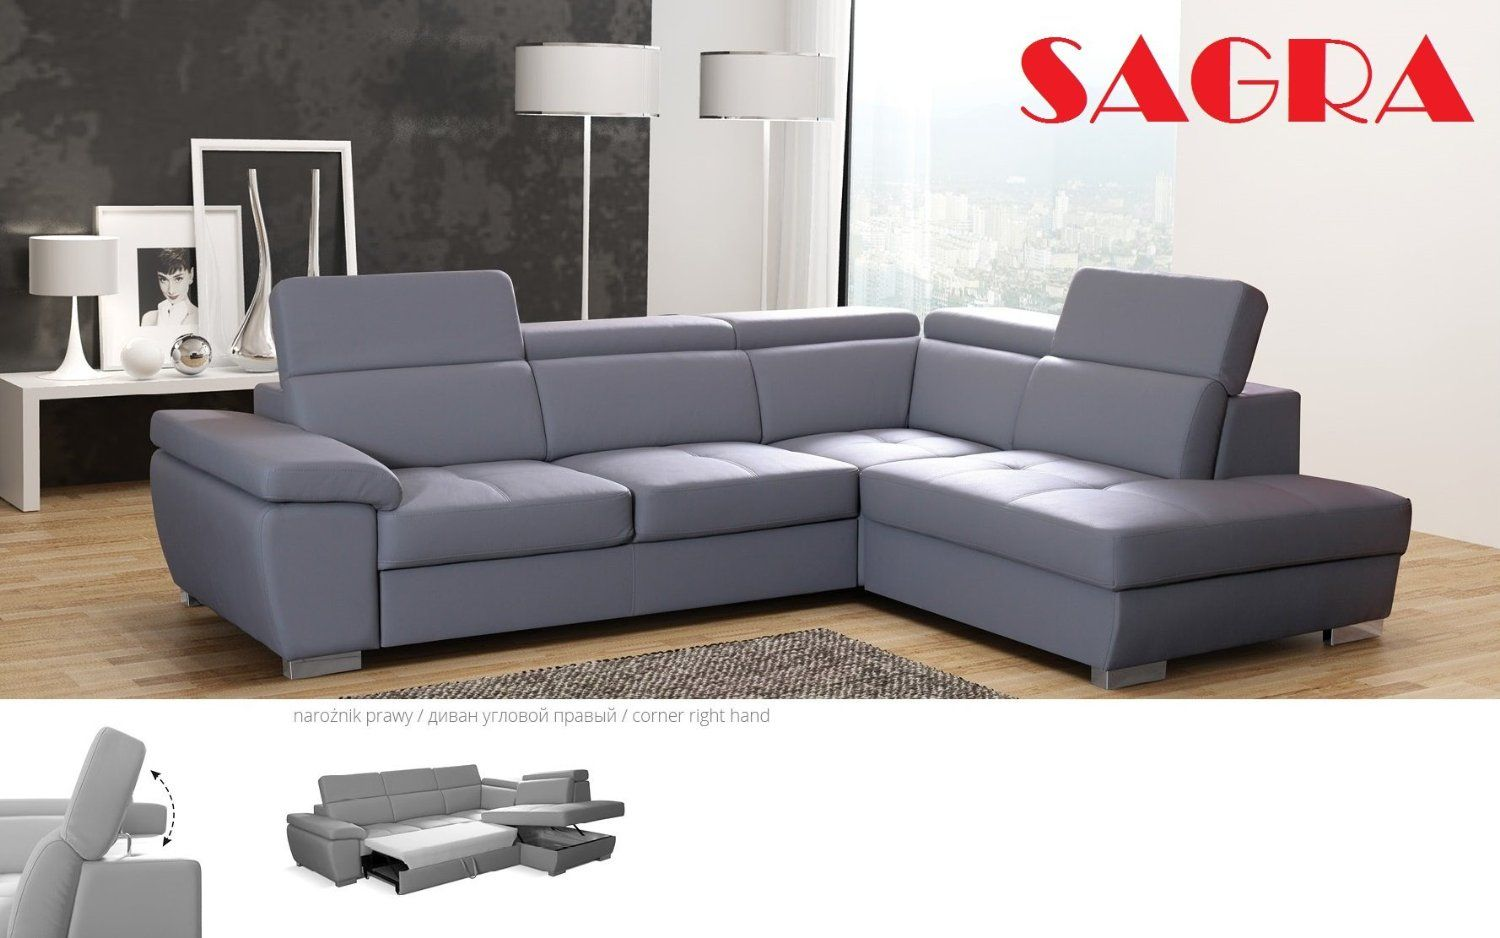 New Leather Corner Sofa Bed Haga Modern Design 2 3 Seater Left Or Right Grey White Black Brown Red Gr Leather Corner Sofa Leather Bedroom Leather Sofa Bed